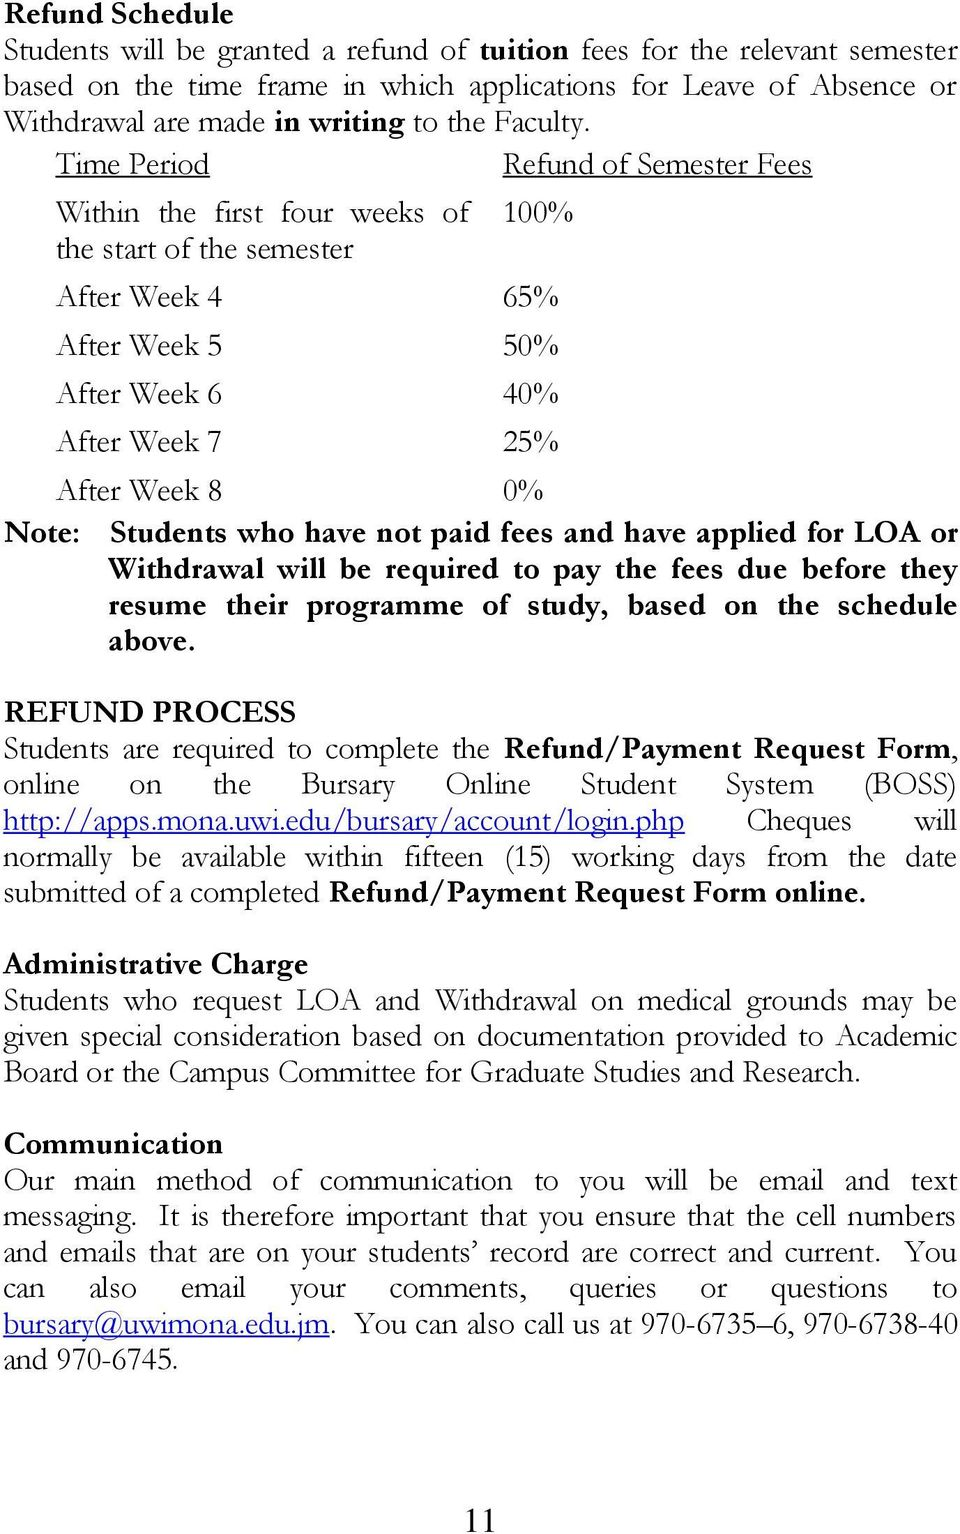 not paid fees and have applied for LOA or Withdrawal will be required to pay the fees due before they resume their programme of study, based on the schedule above.